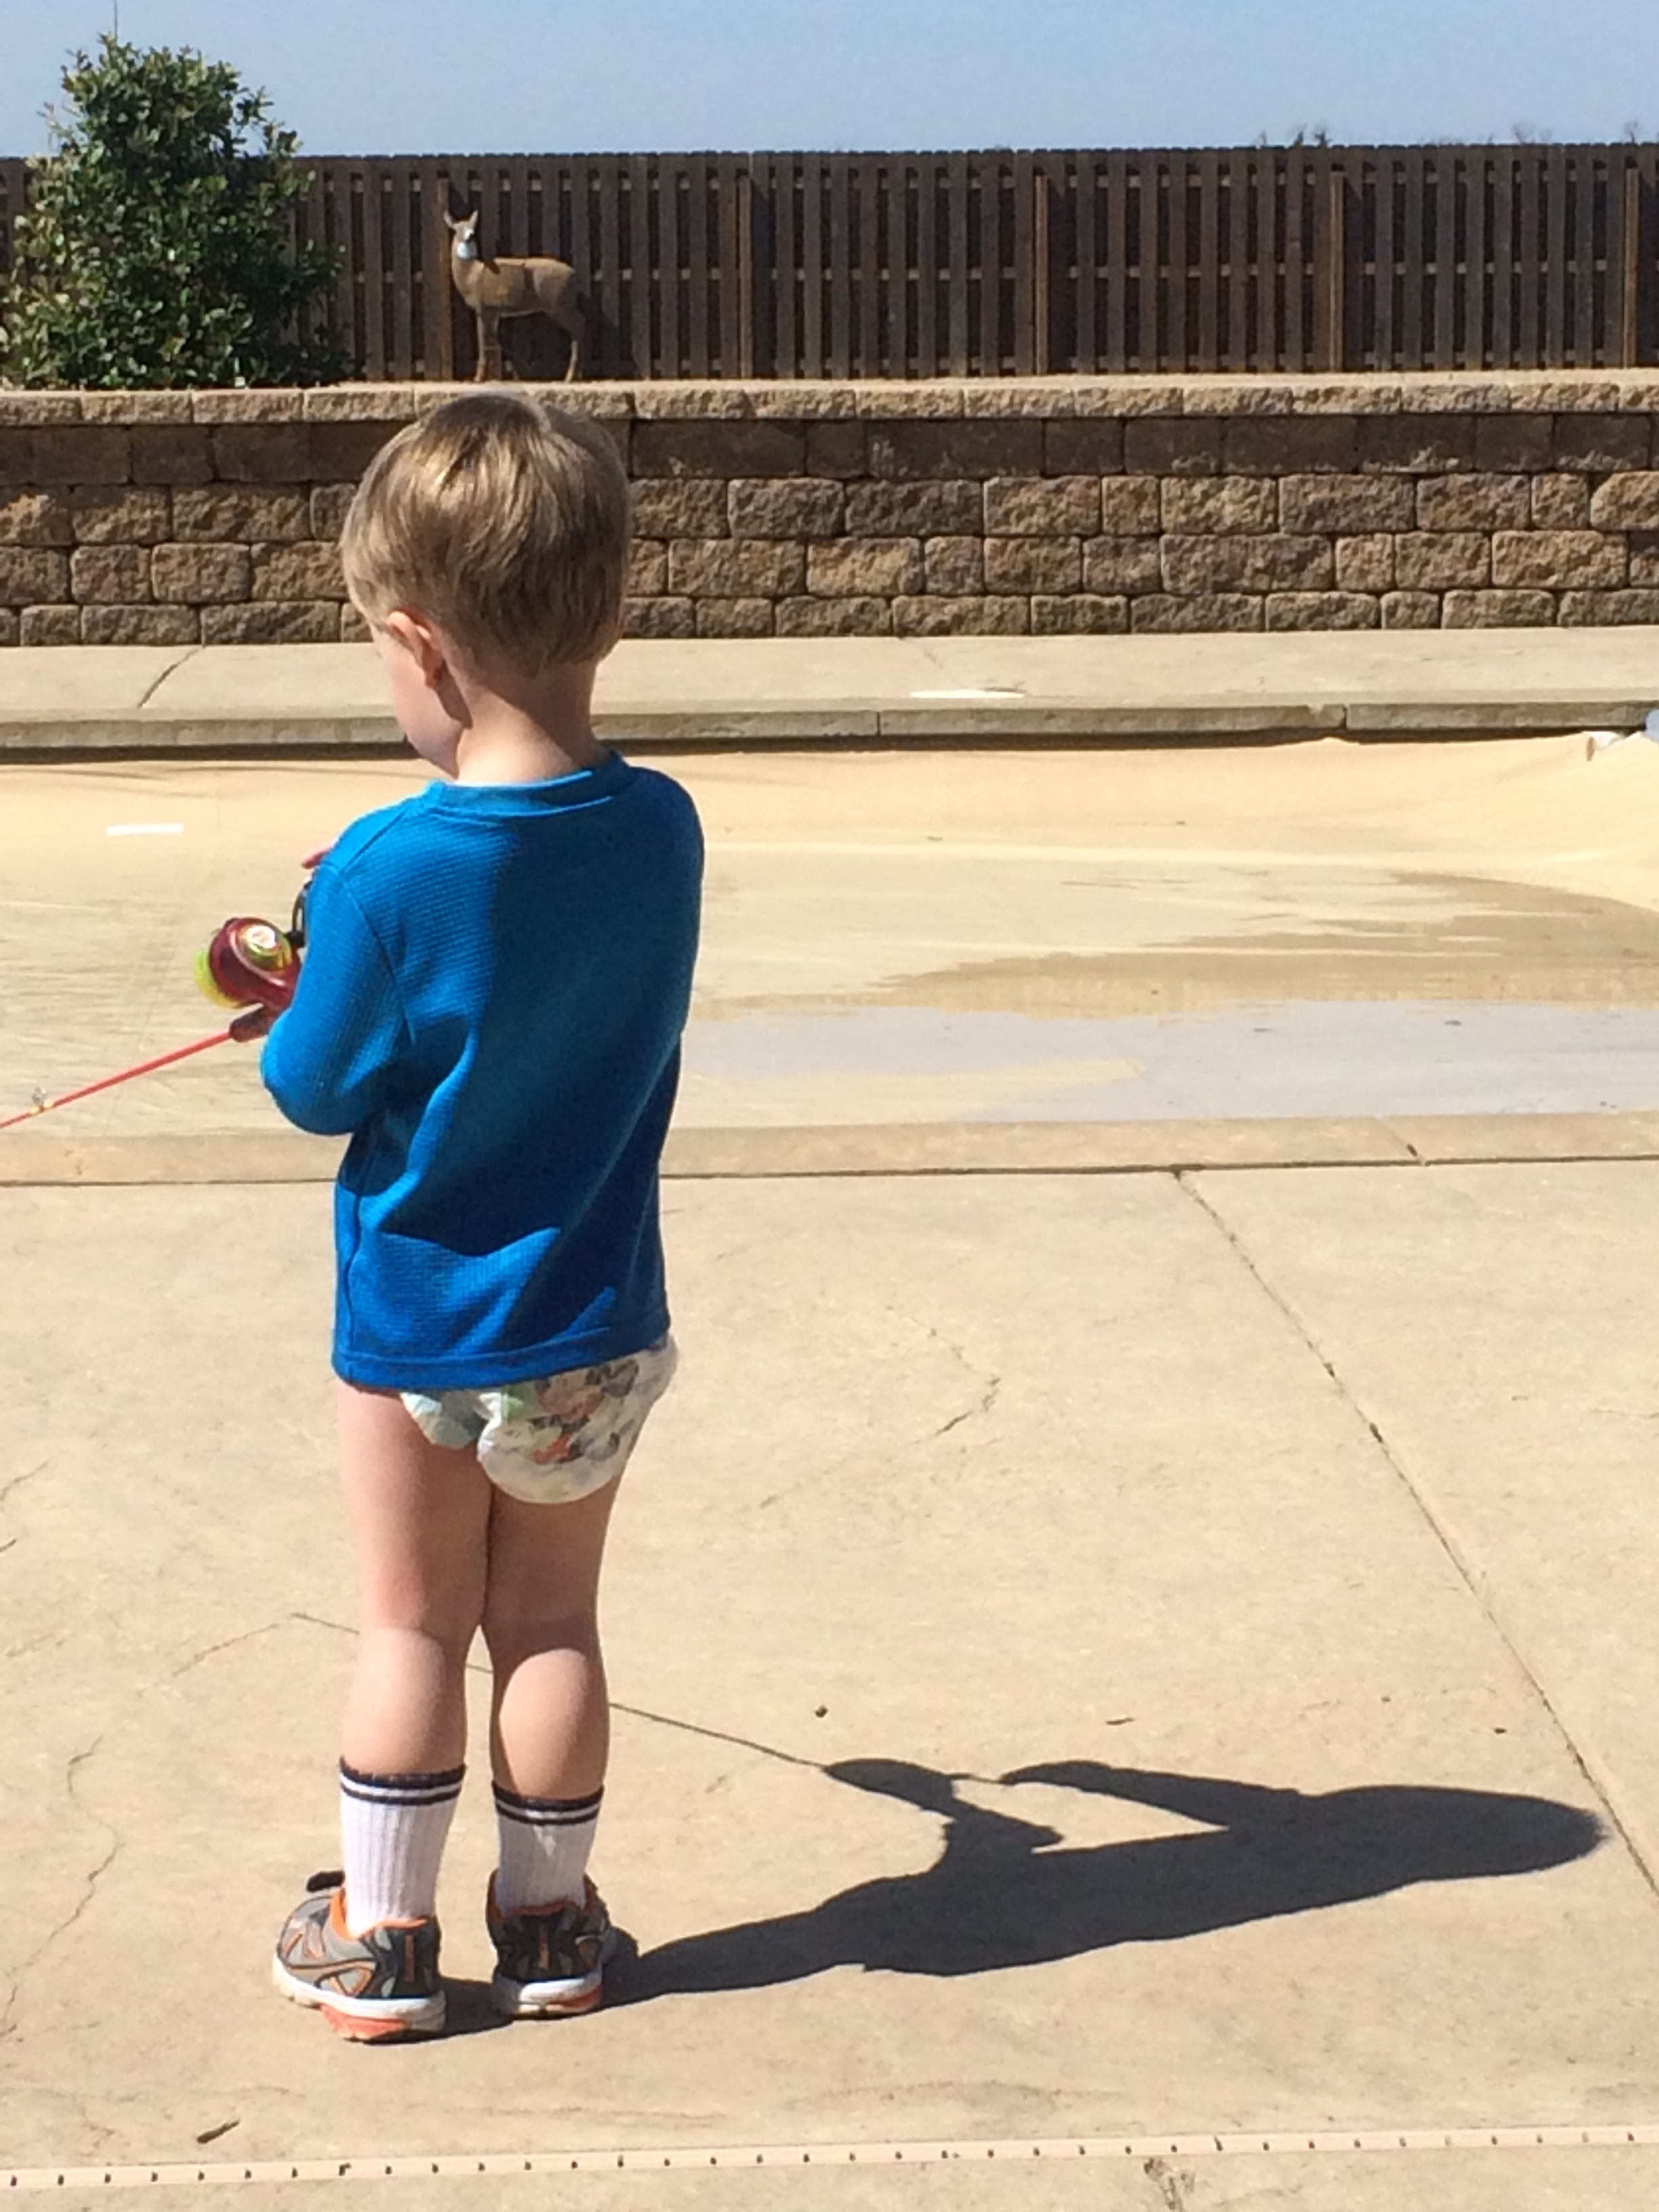 Mason fishing in the cement pond